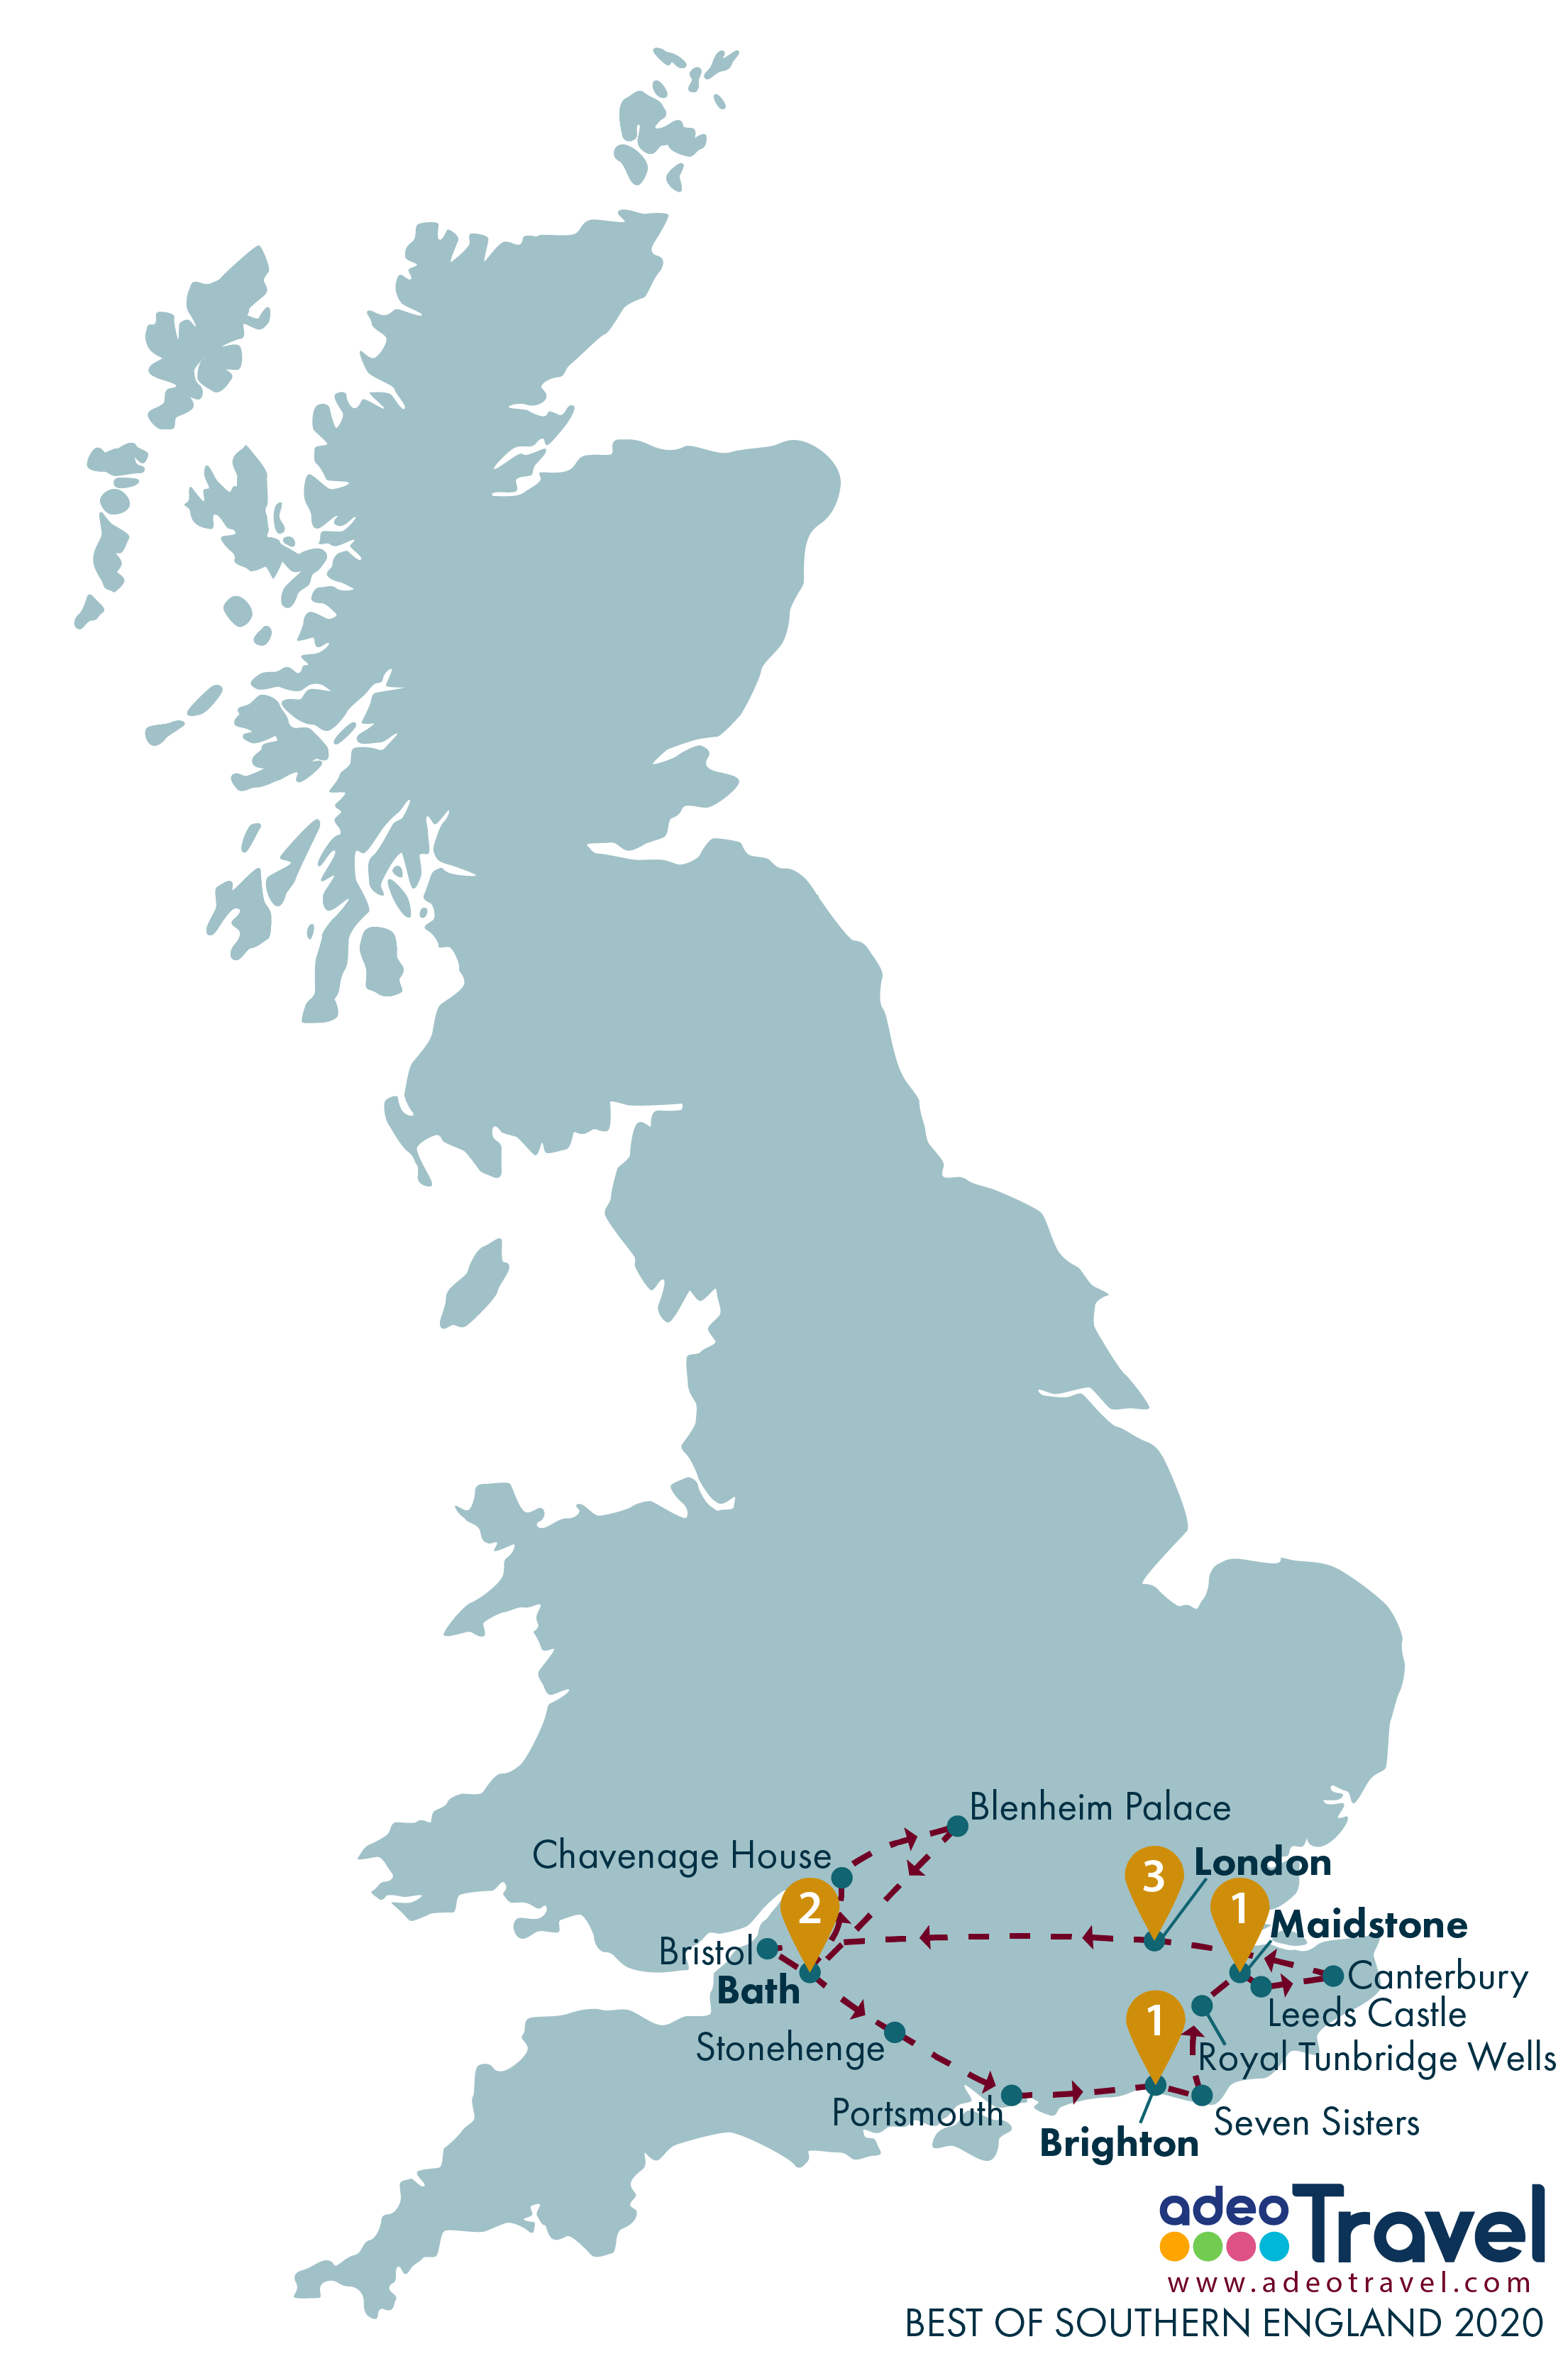 Map - Best of Southern England 2020